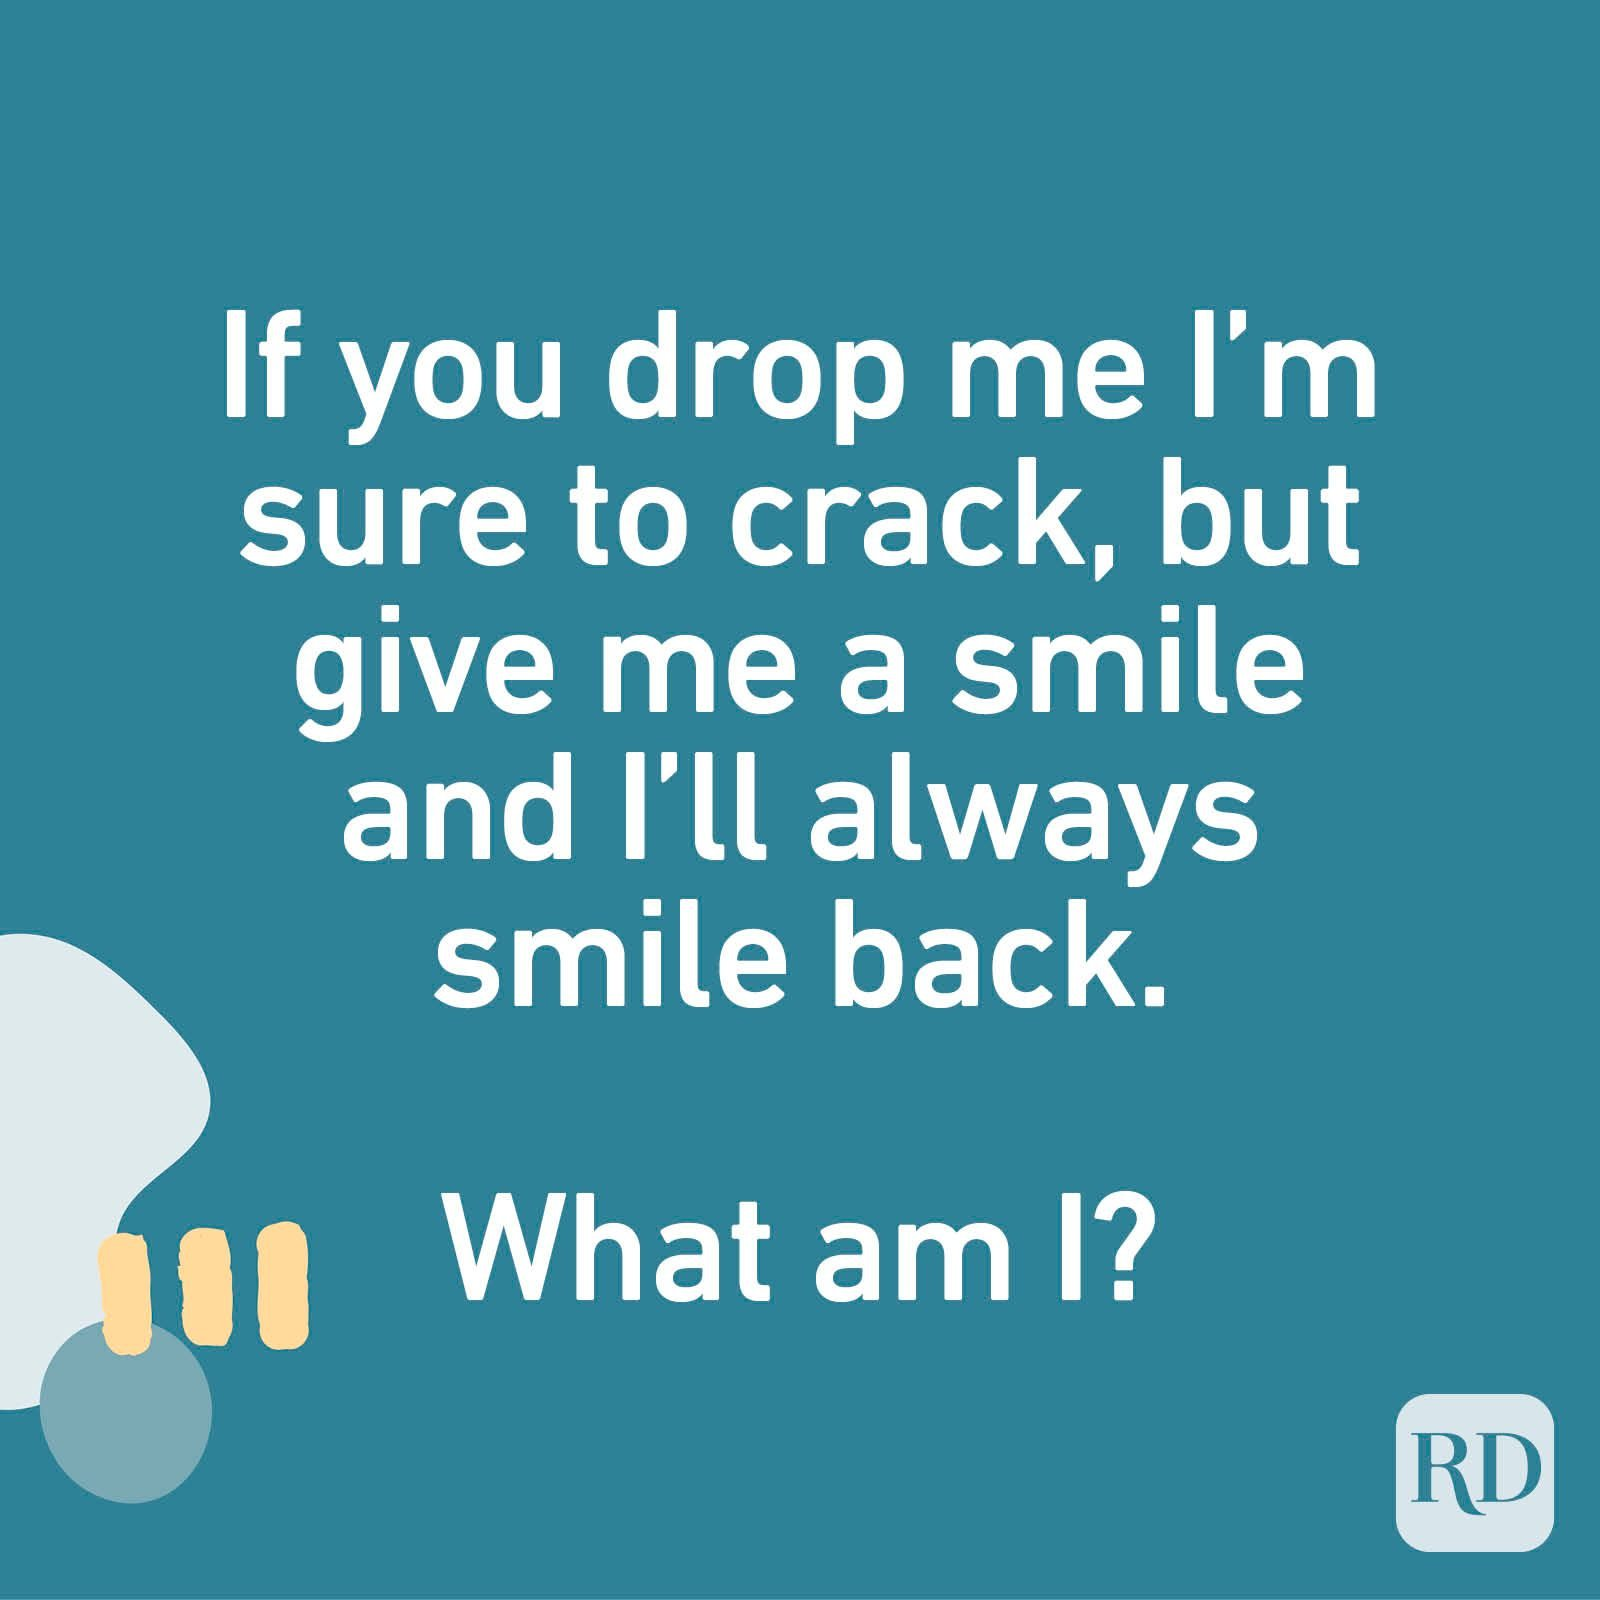 If you drop me I'm sure to crack, but give me a smile and I'll always smile back. What am I?